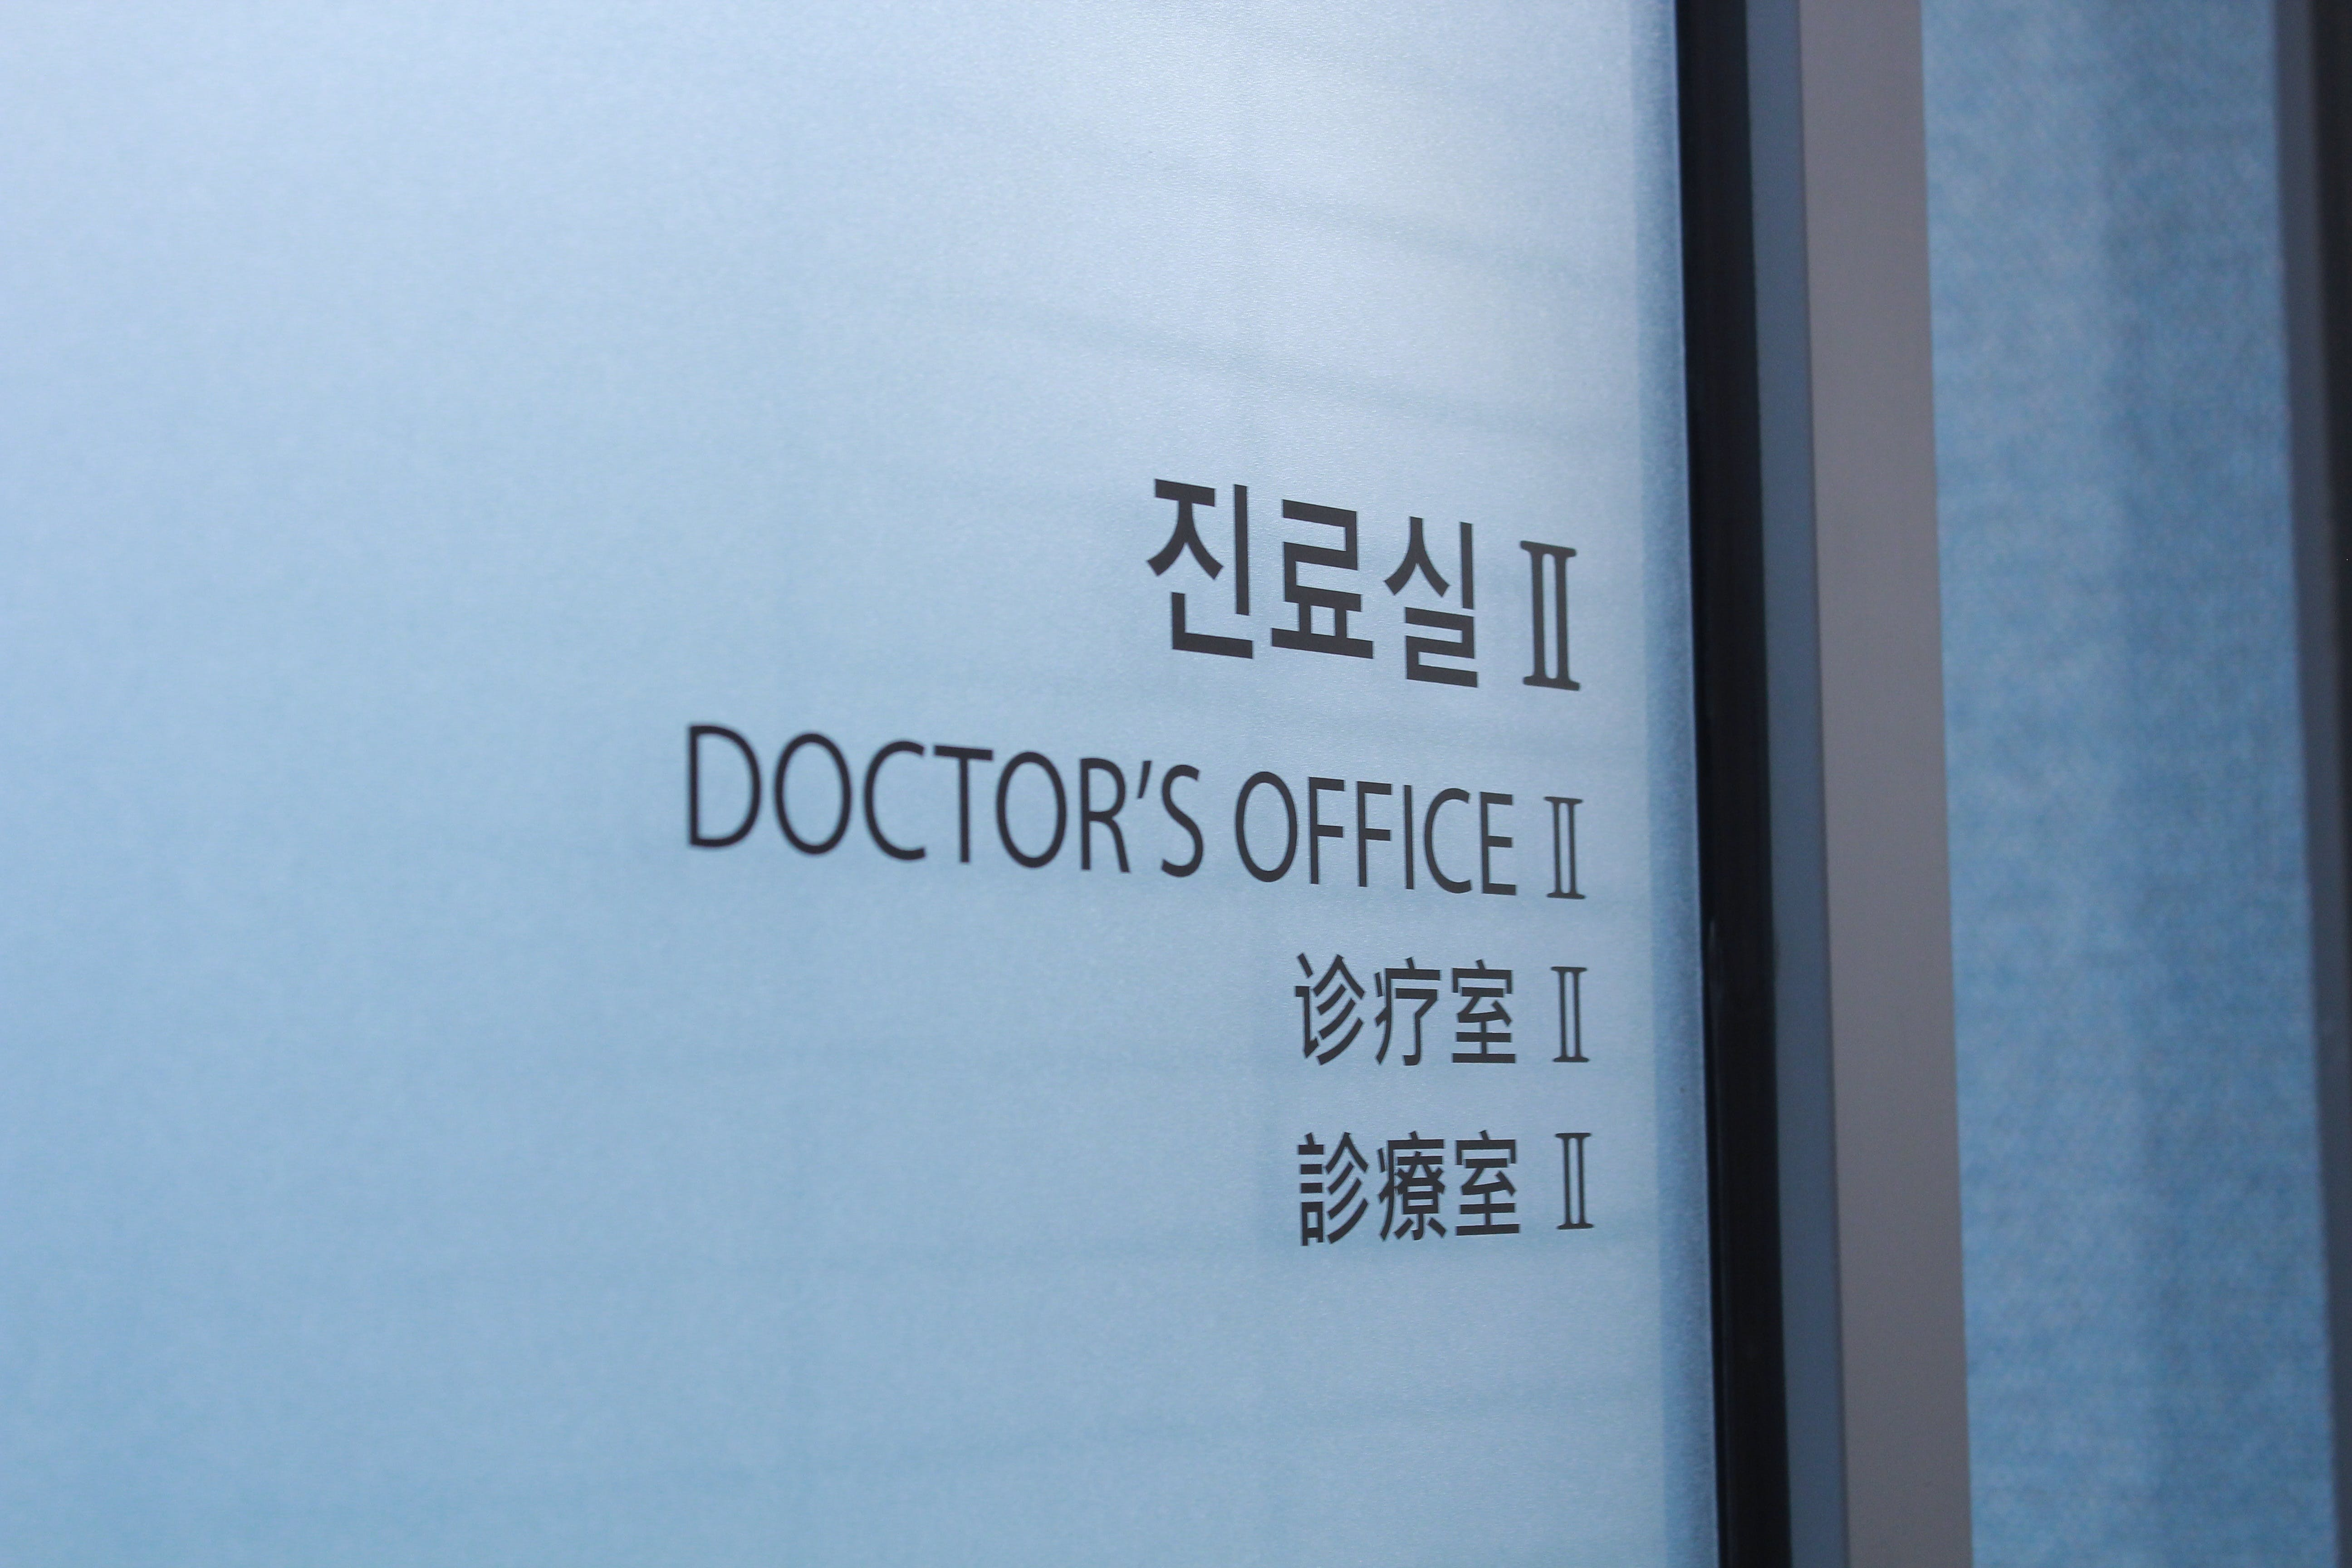 Doctor's Office 2 Signage